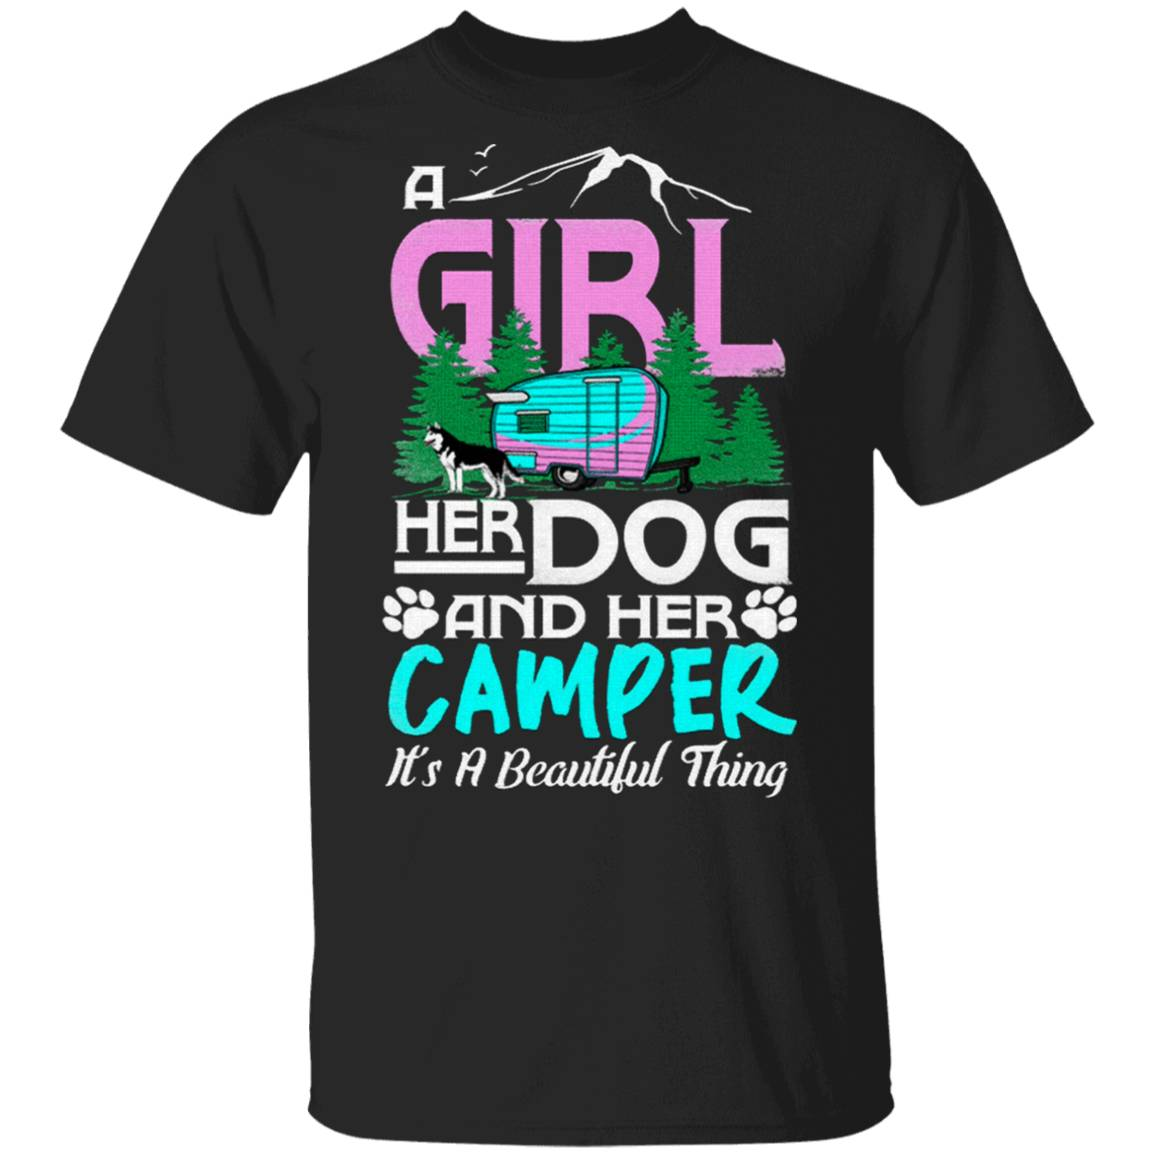 Camping A girl her dog and her camper its a beautiful thing T-Shirt